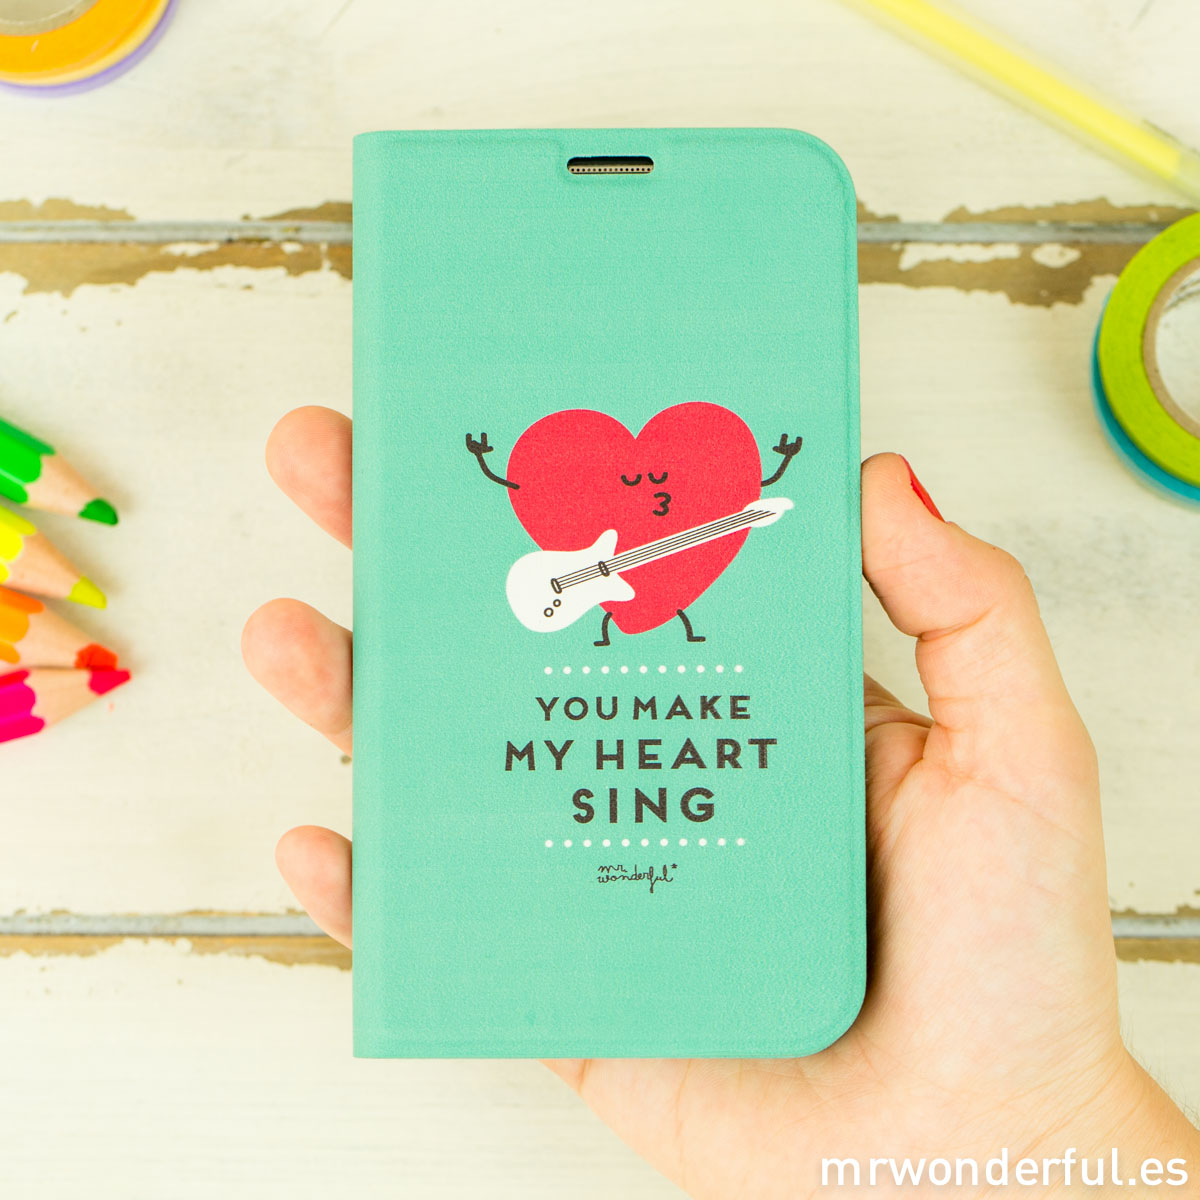 mrwonderful_MRFOL004_funda-mint-samsung-galaxy-S5_you-make-heart-sing-38